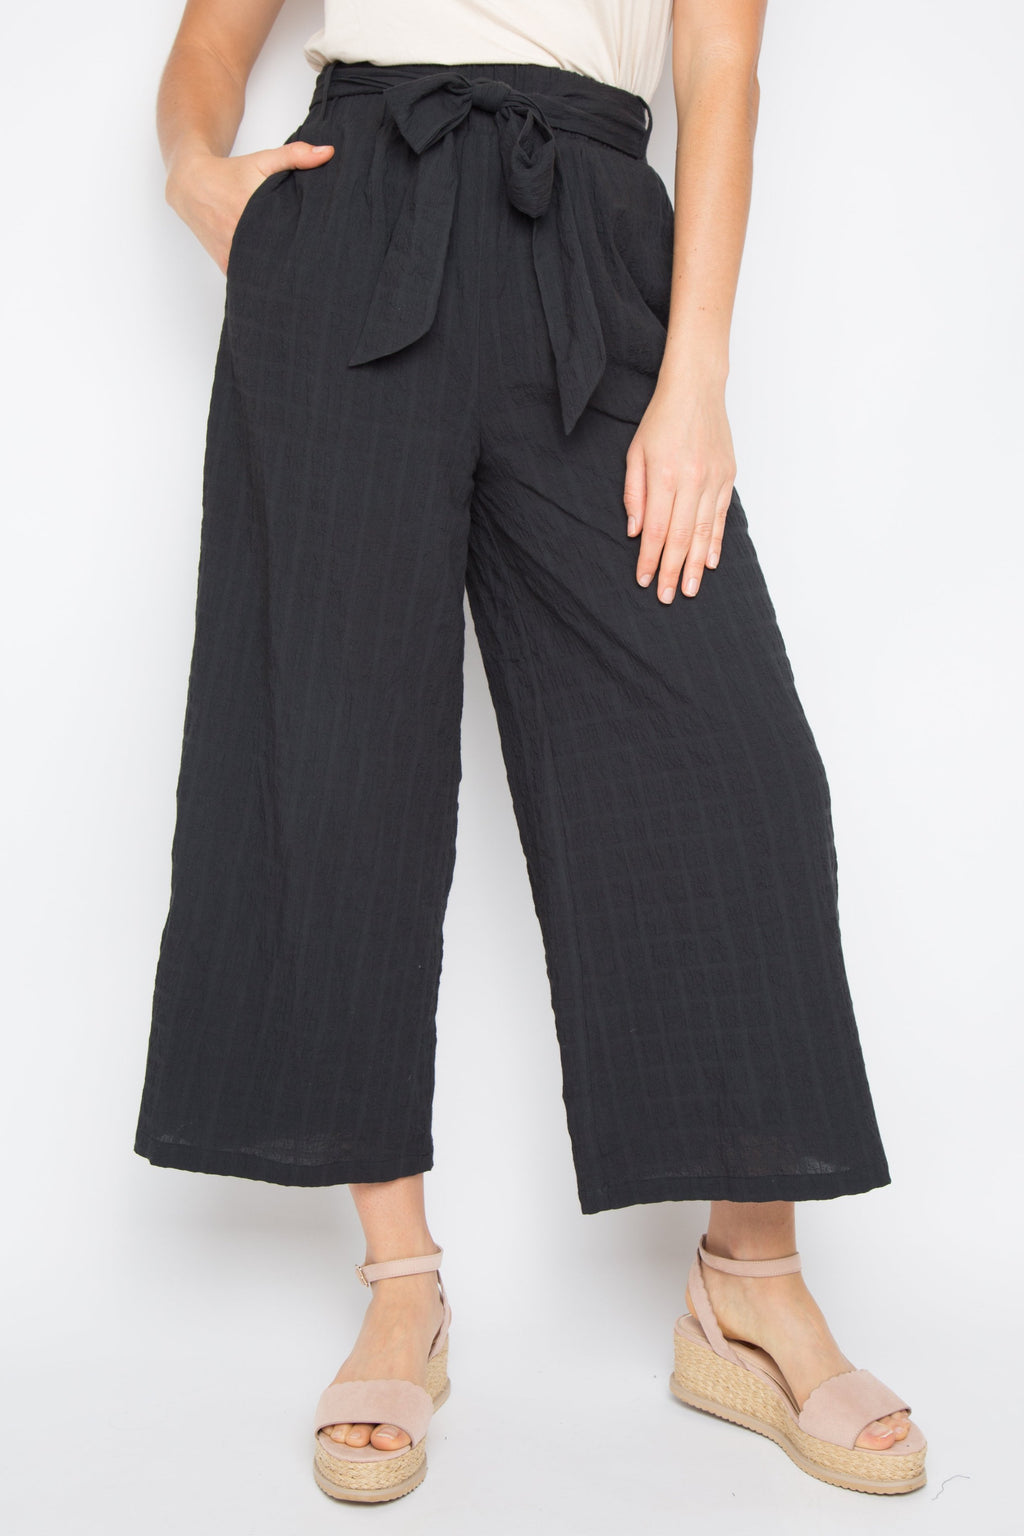 The Essential Pant in Crinkle Black